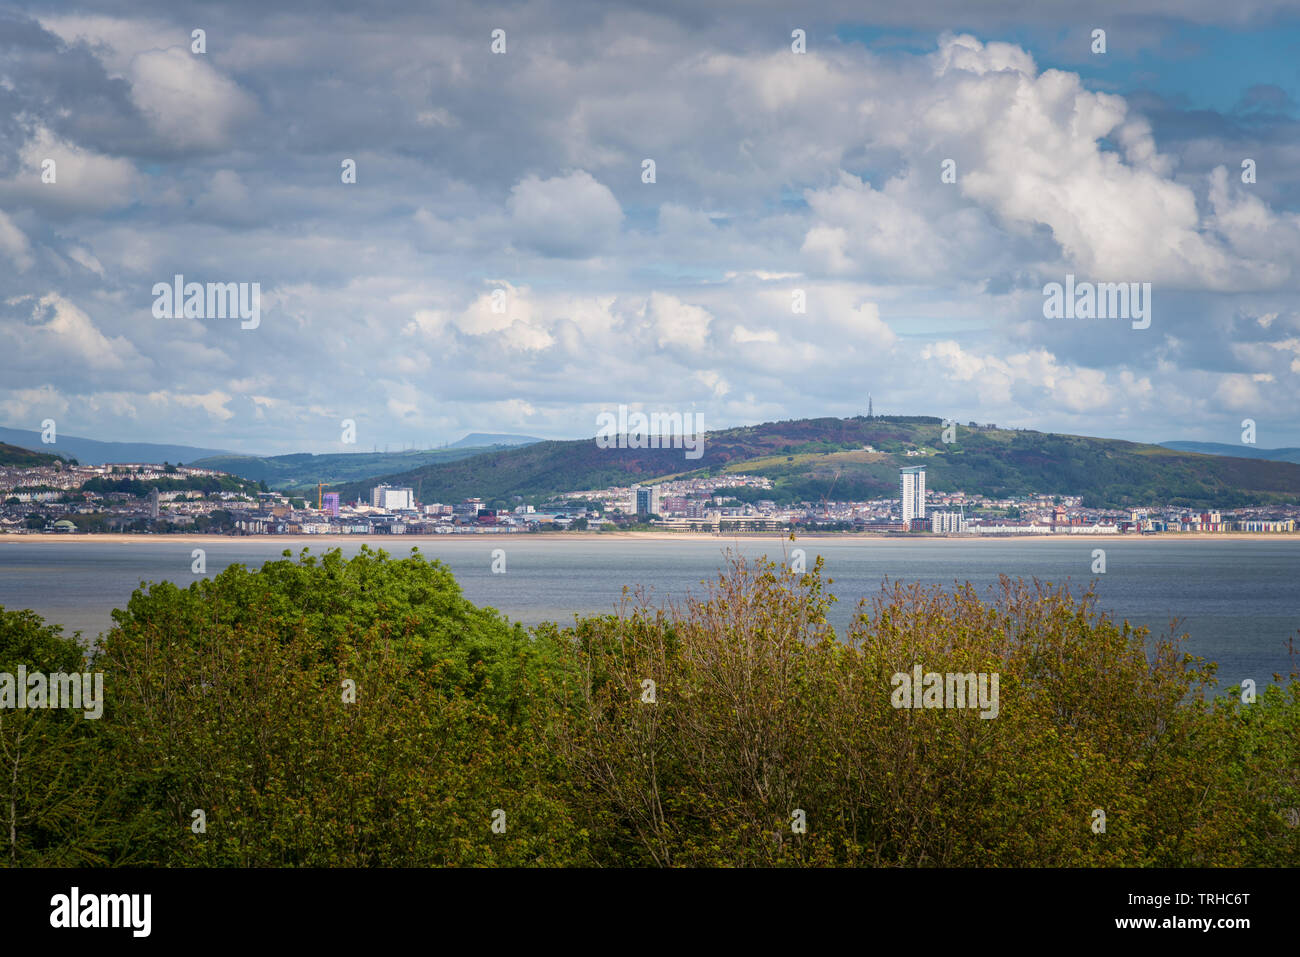 Swansea city view from Mumbles, Wales, UK Stock Photo